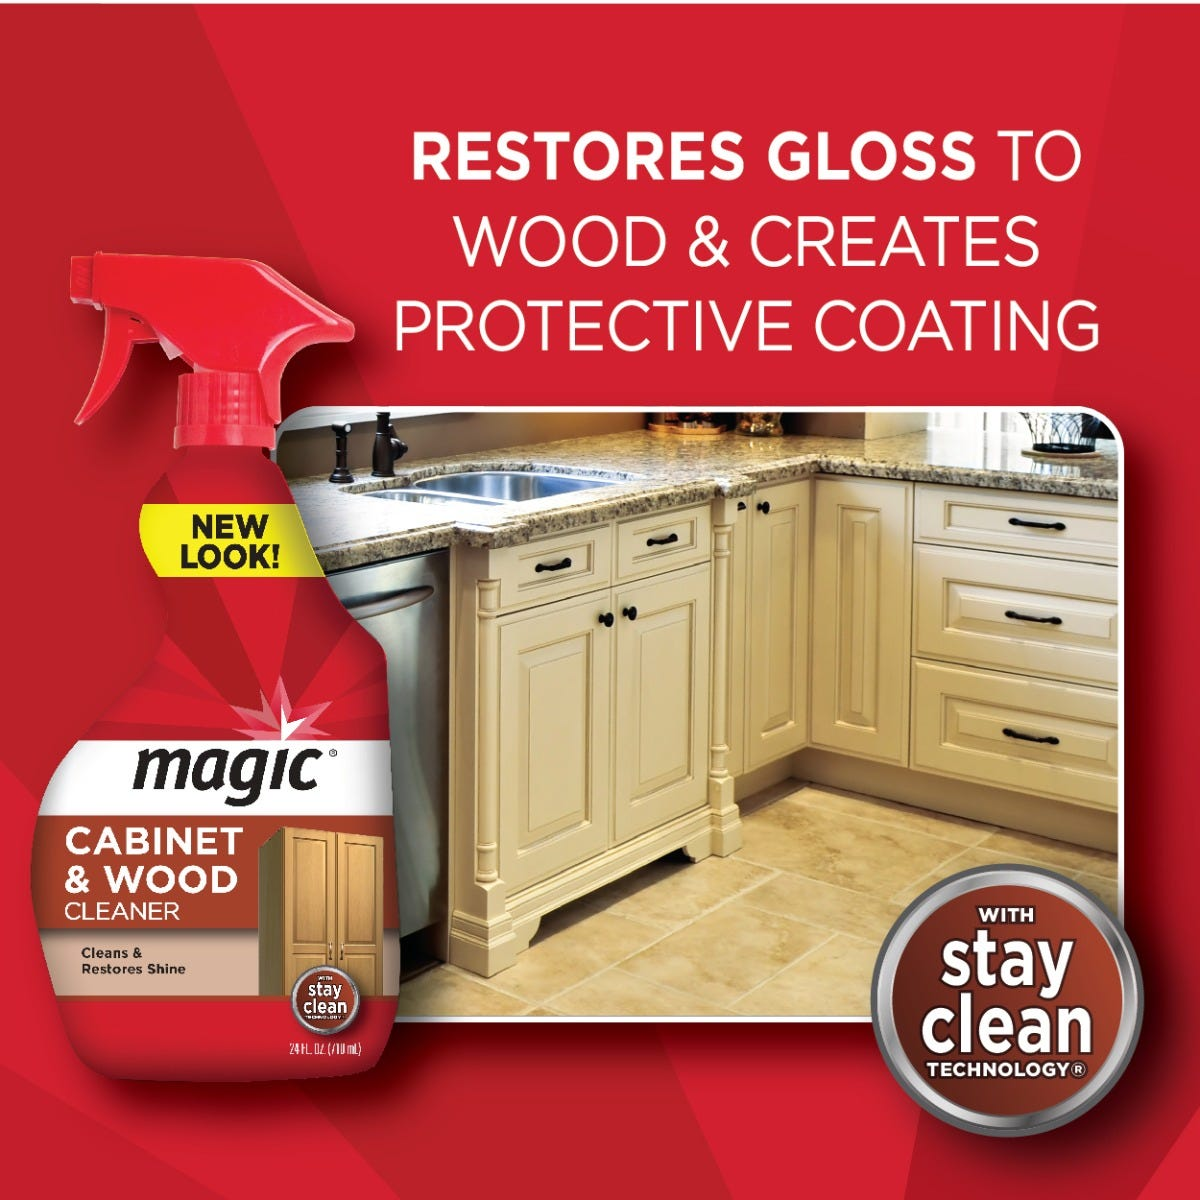 ... Restore gloss to wood furniture & cabinets ...